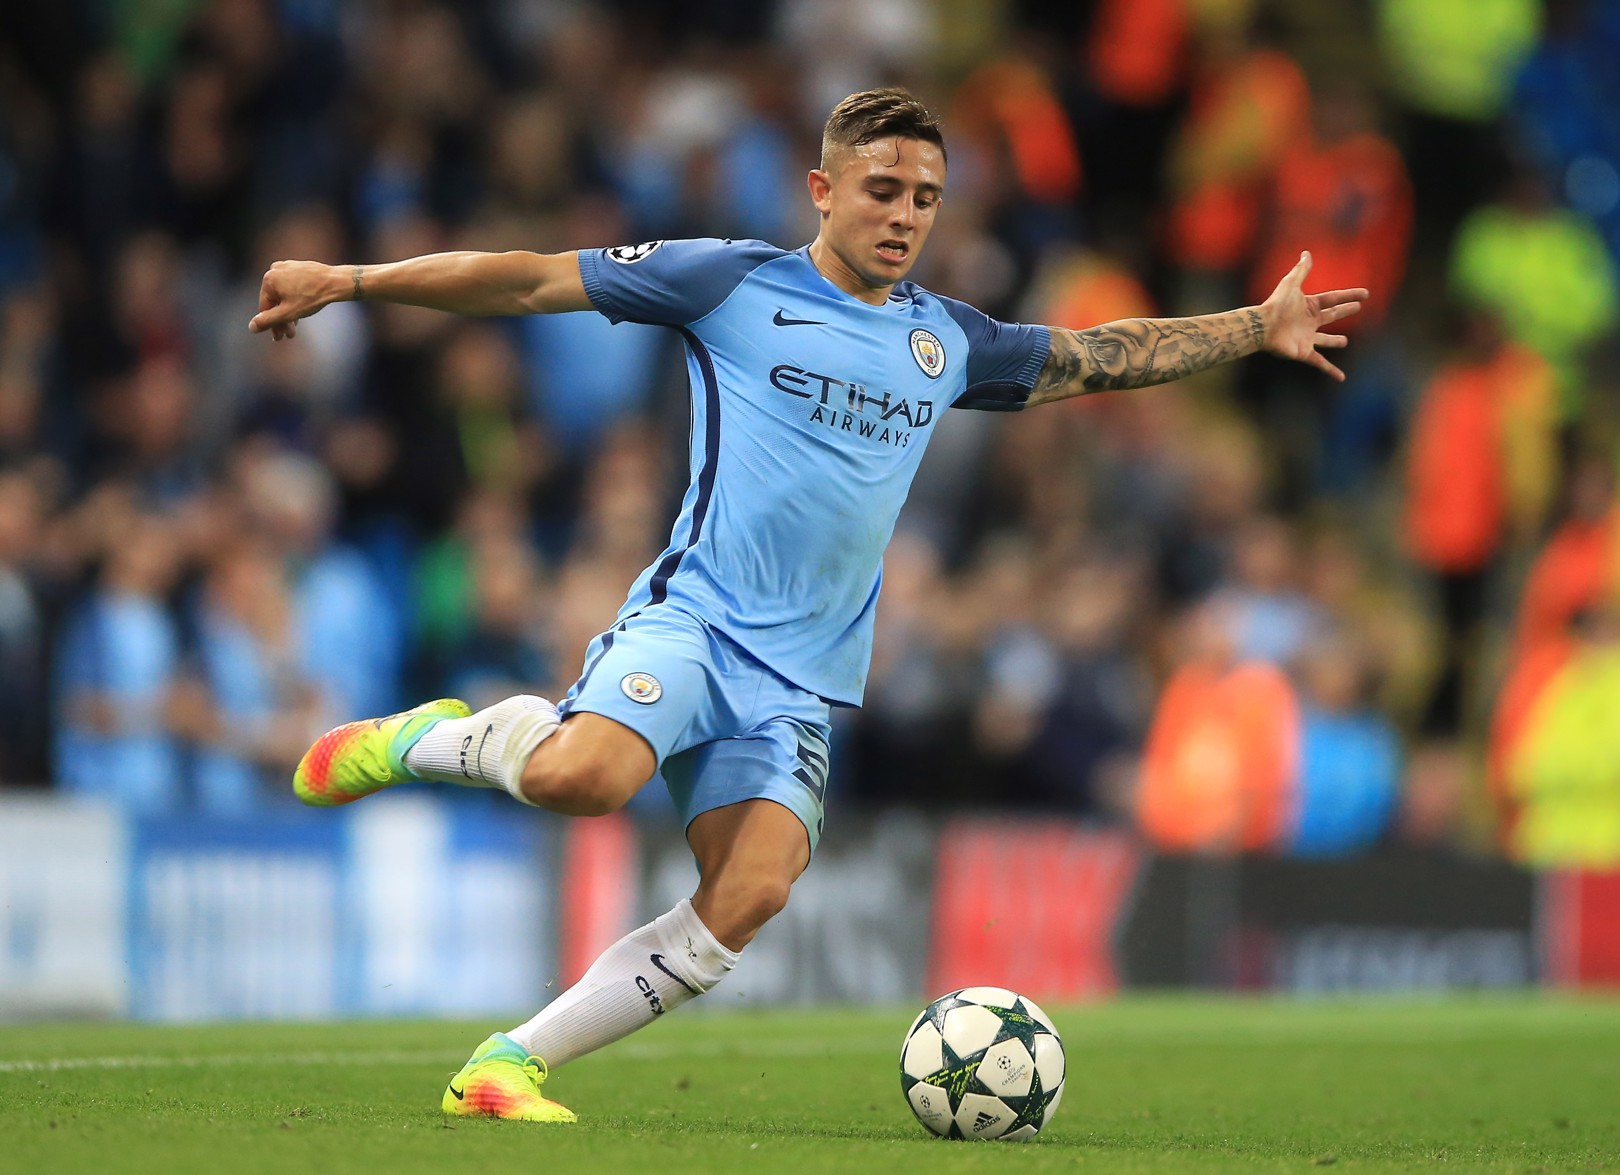 Pablo Maffeo is in contention for a start